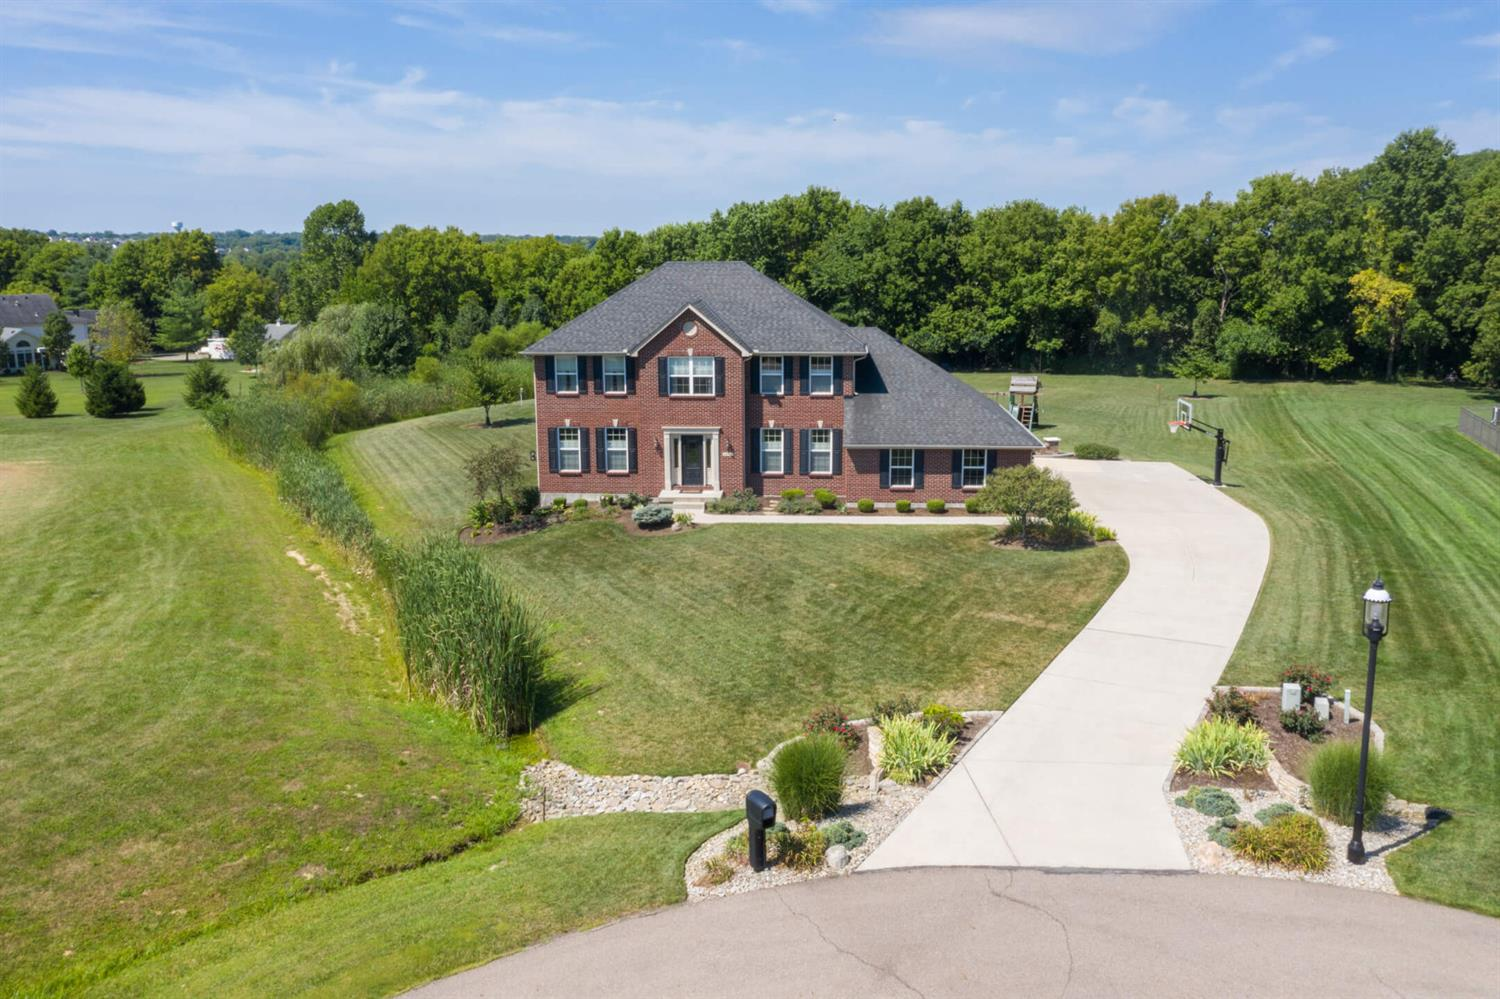 Property for sale at 6991 Mela Court, Clearcreek Twp.,  Ohio 45066